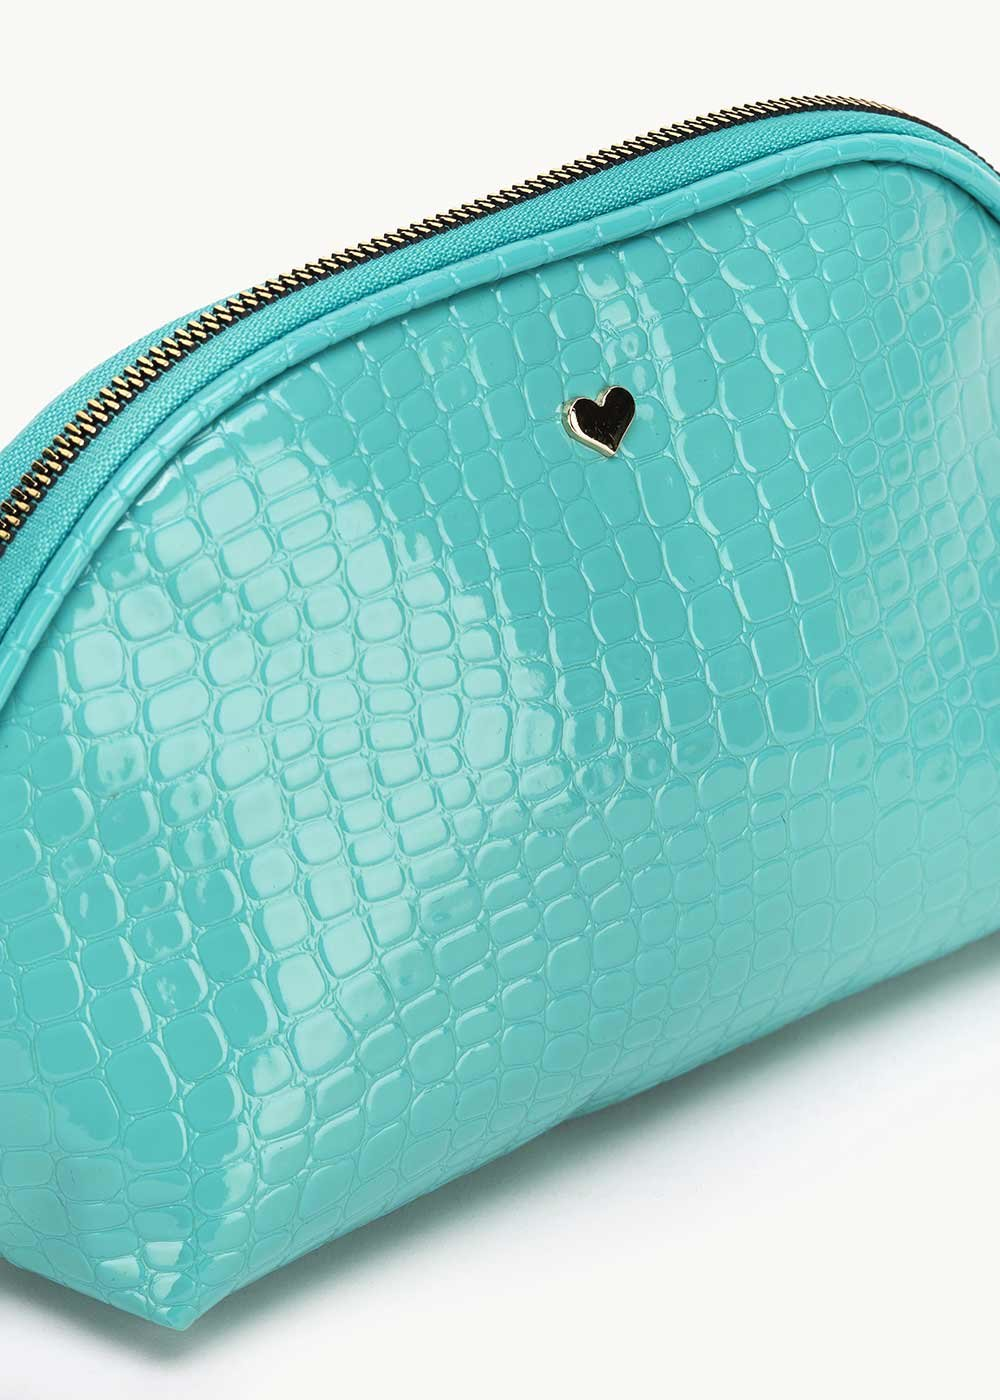 Birk vanity case with hammered effect - Emerald - Woman